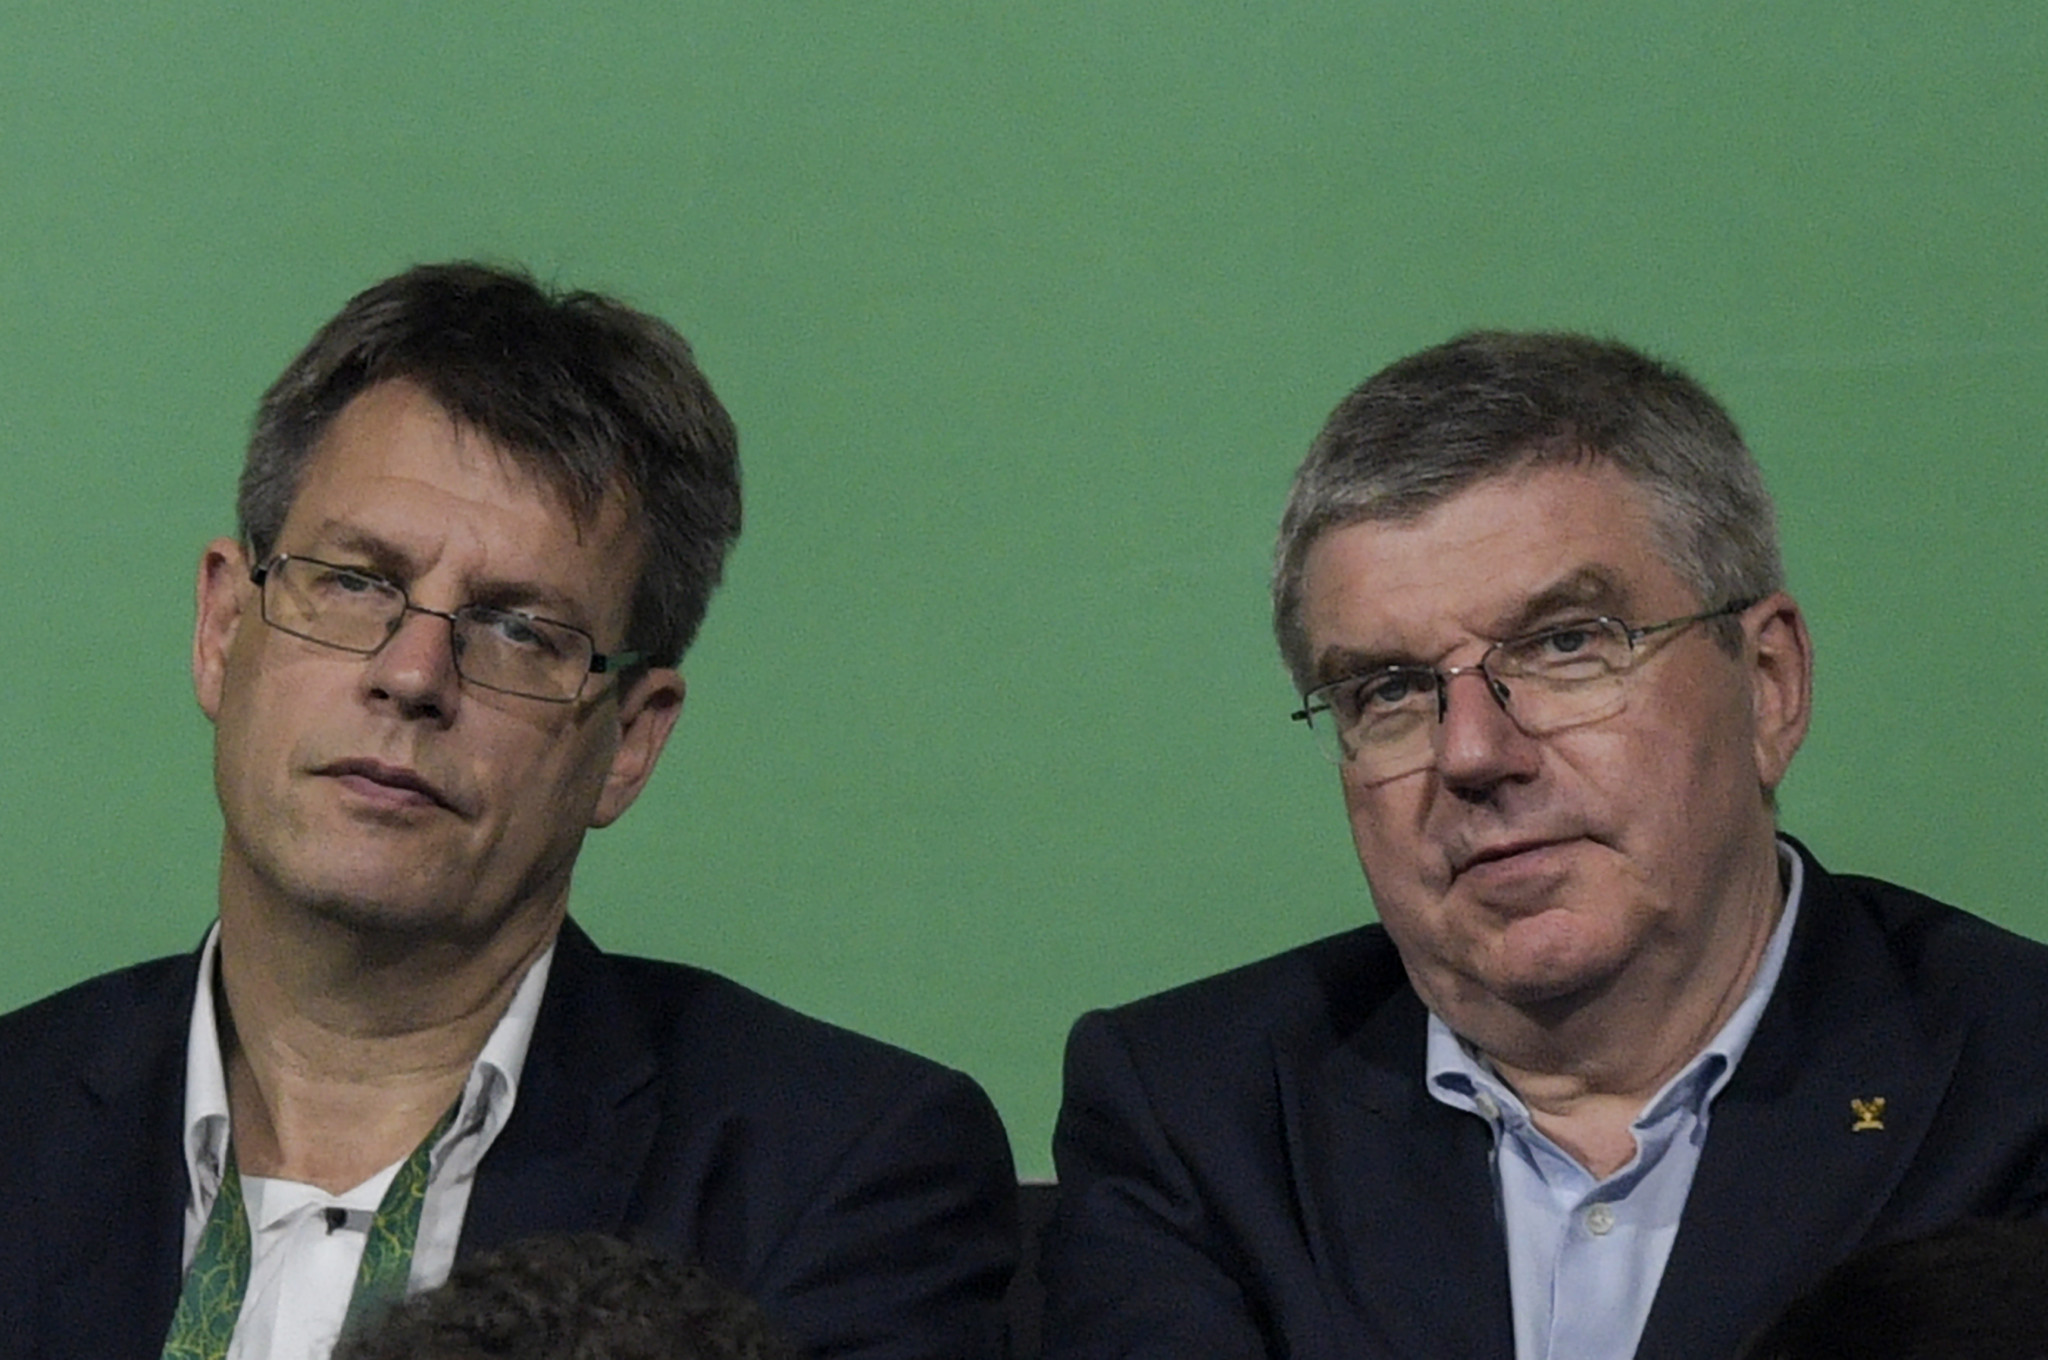 Thomas Weikert, left, announced last month he would not stand for another term as President of the ITTF after facing public criticism from his colleagues ©Getty Images